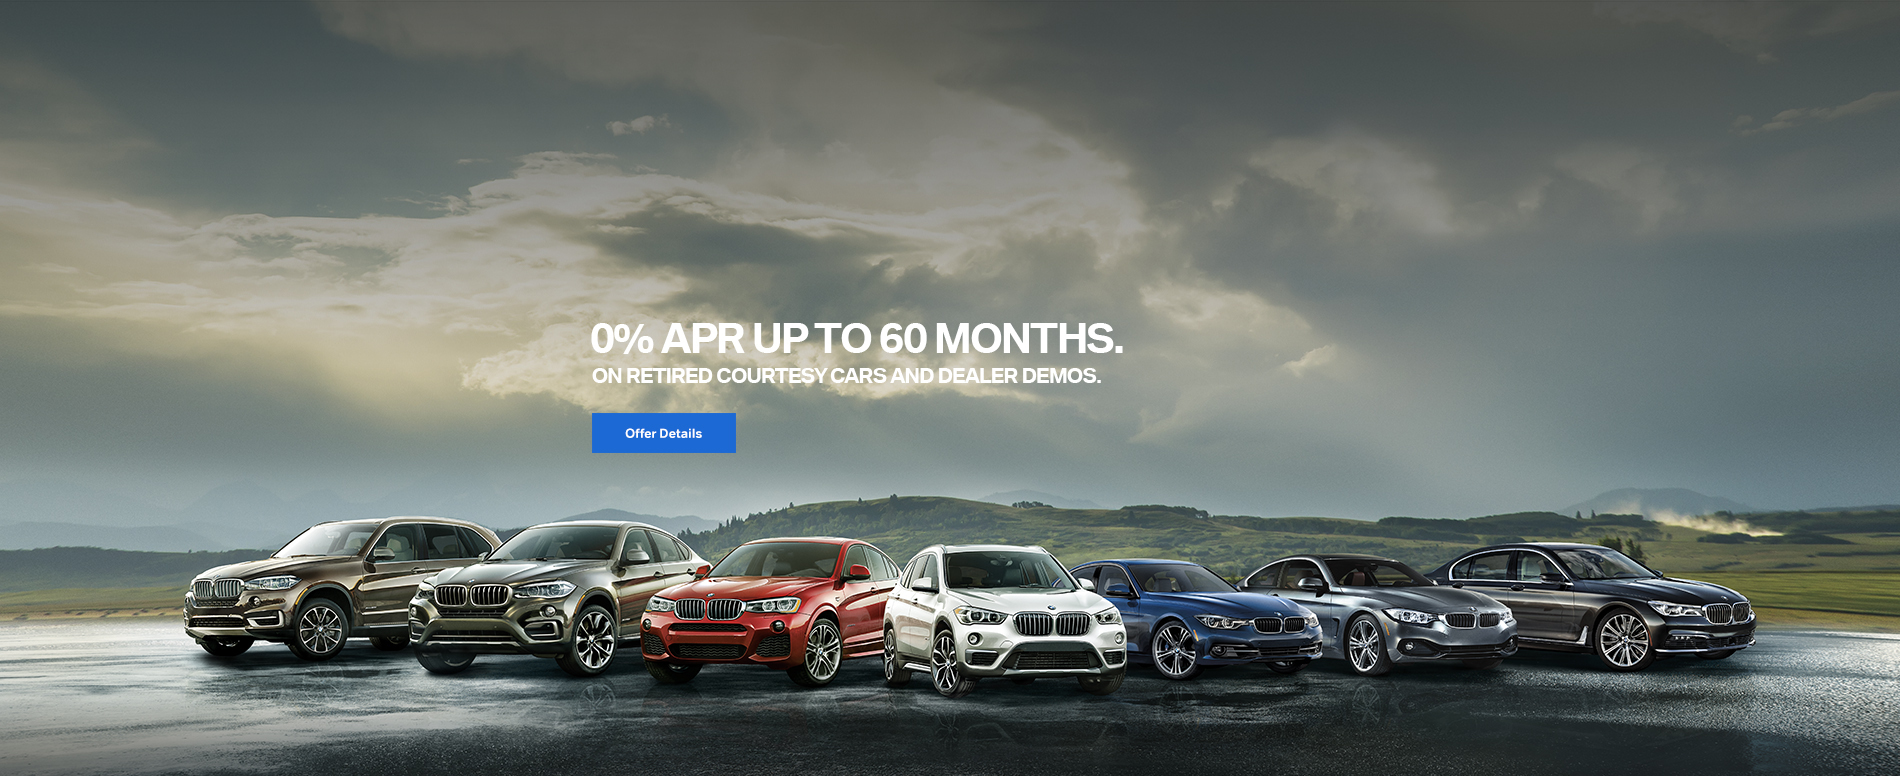 0% APR on Retired Service Loaners and BMW Company Cars